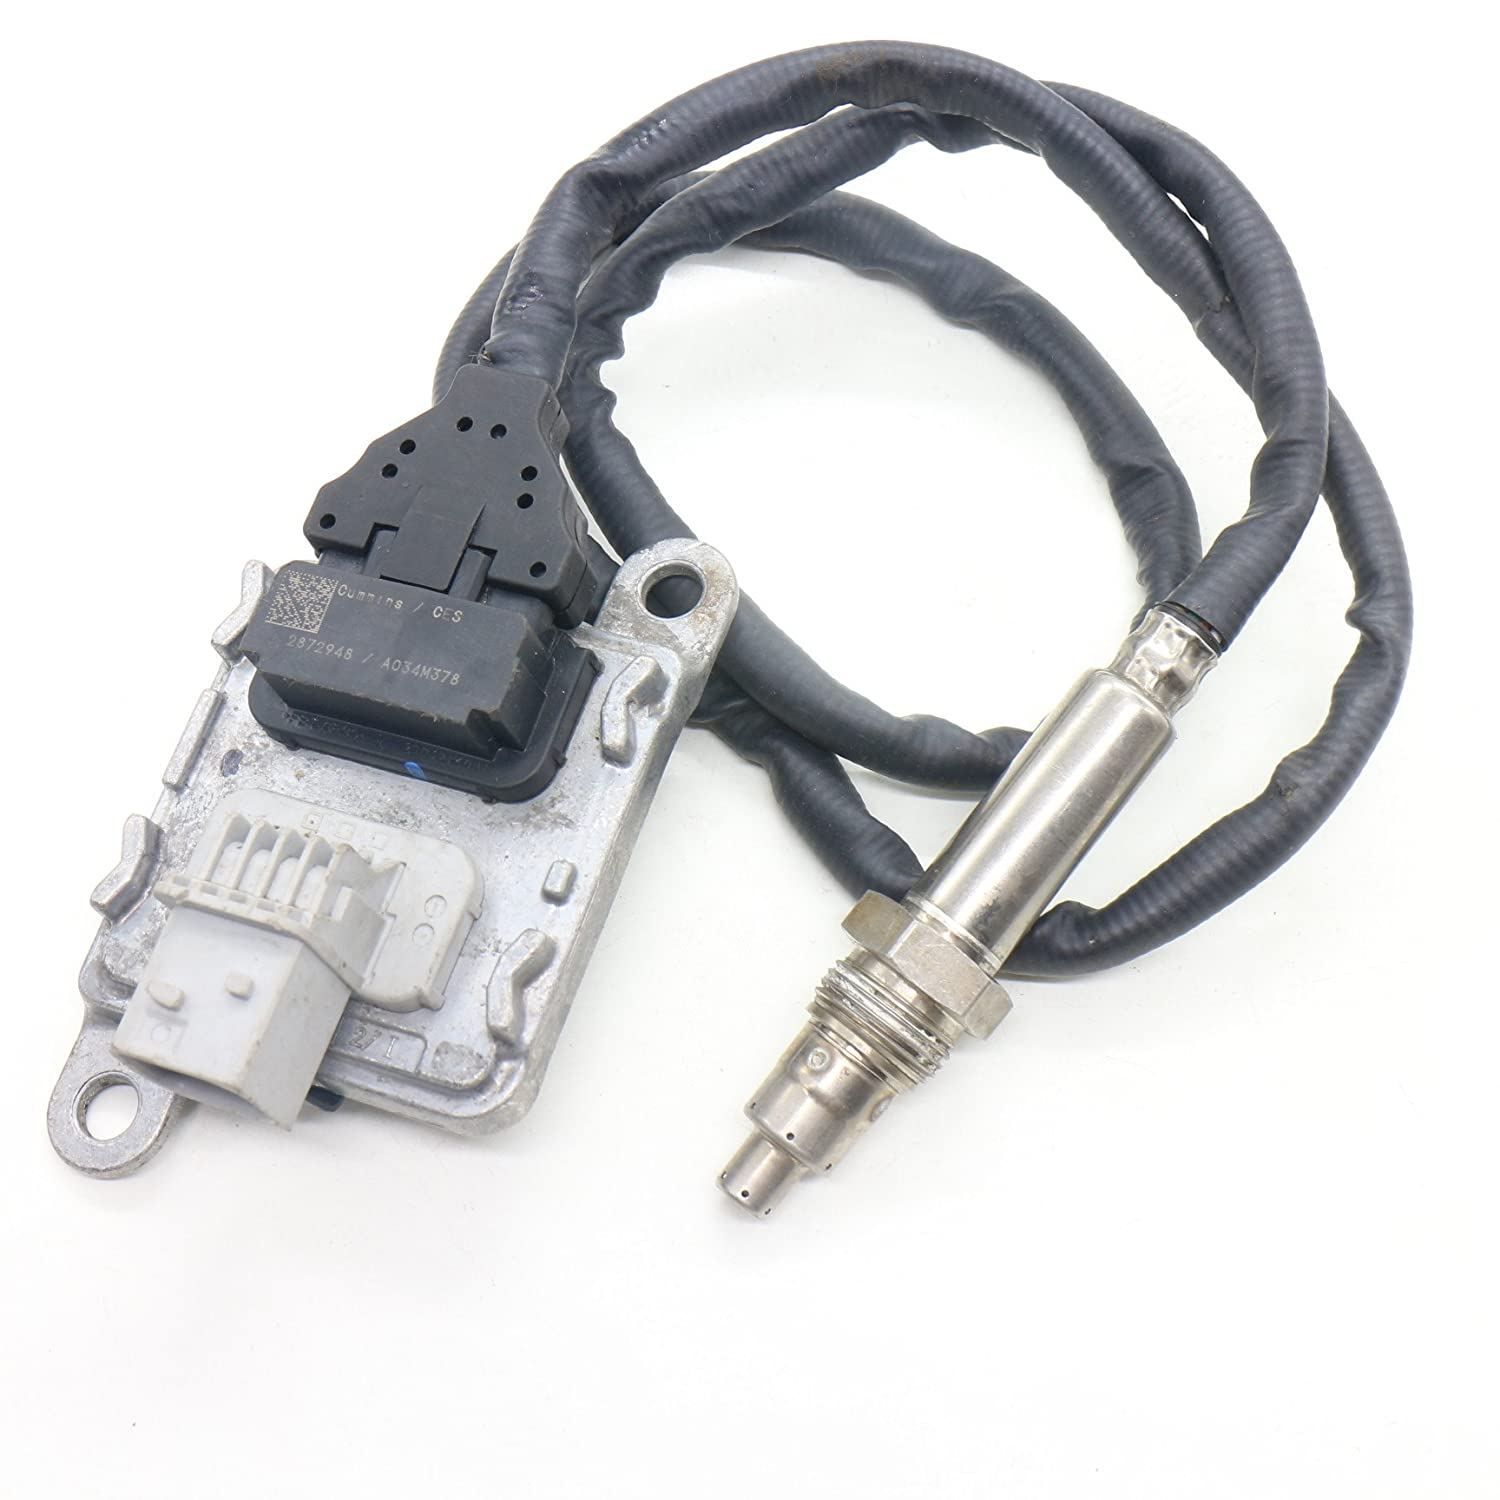 5wk9 6638B Nox Sensor Nitrogen Oxide sensor For CUMMINS, Gauges